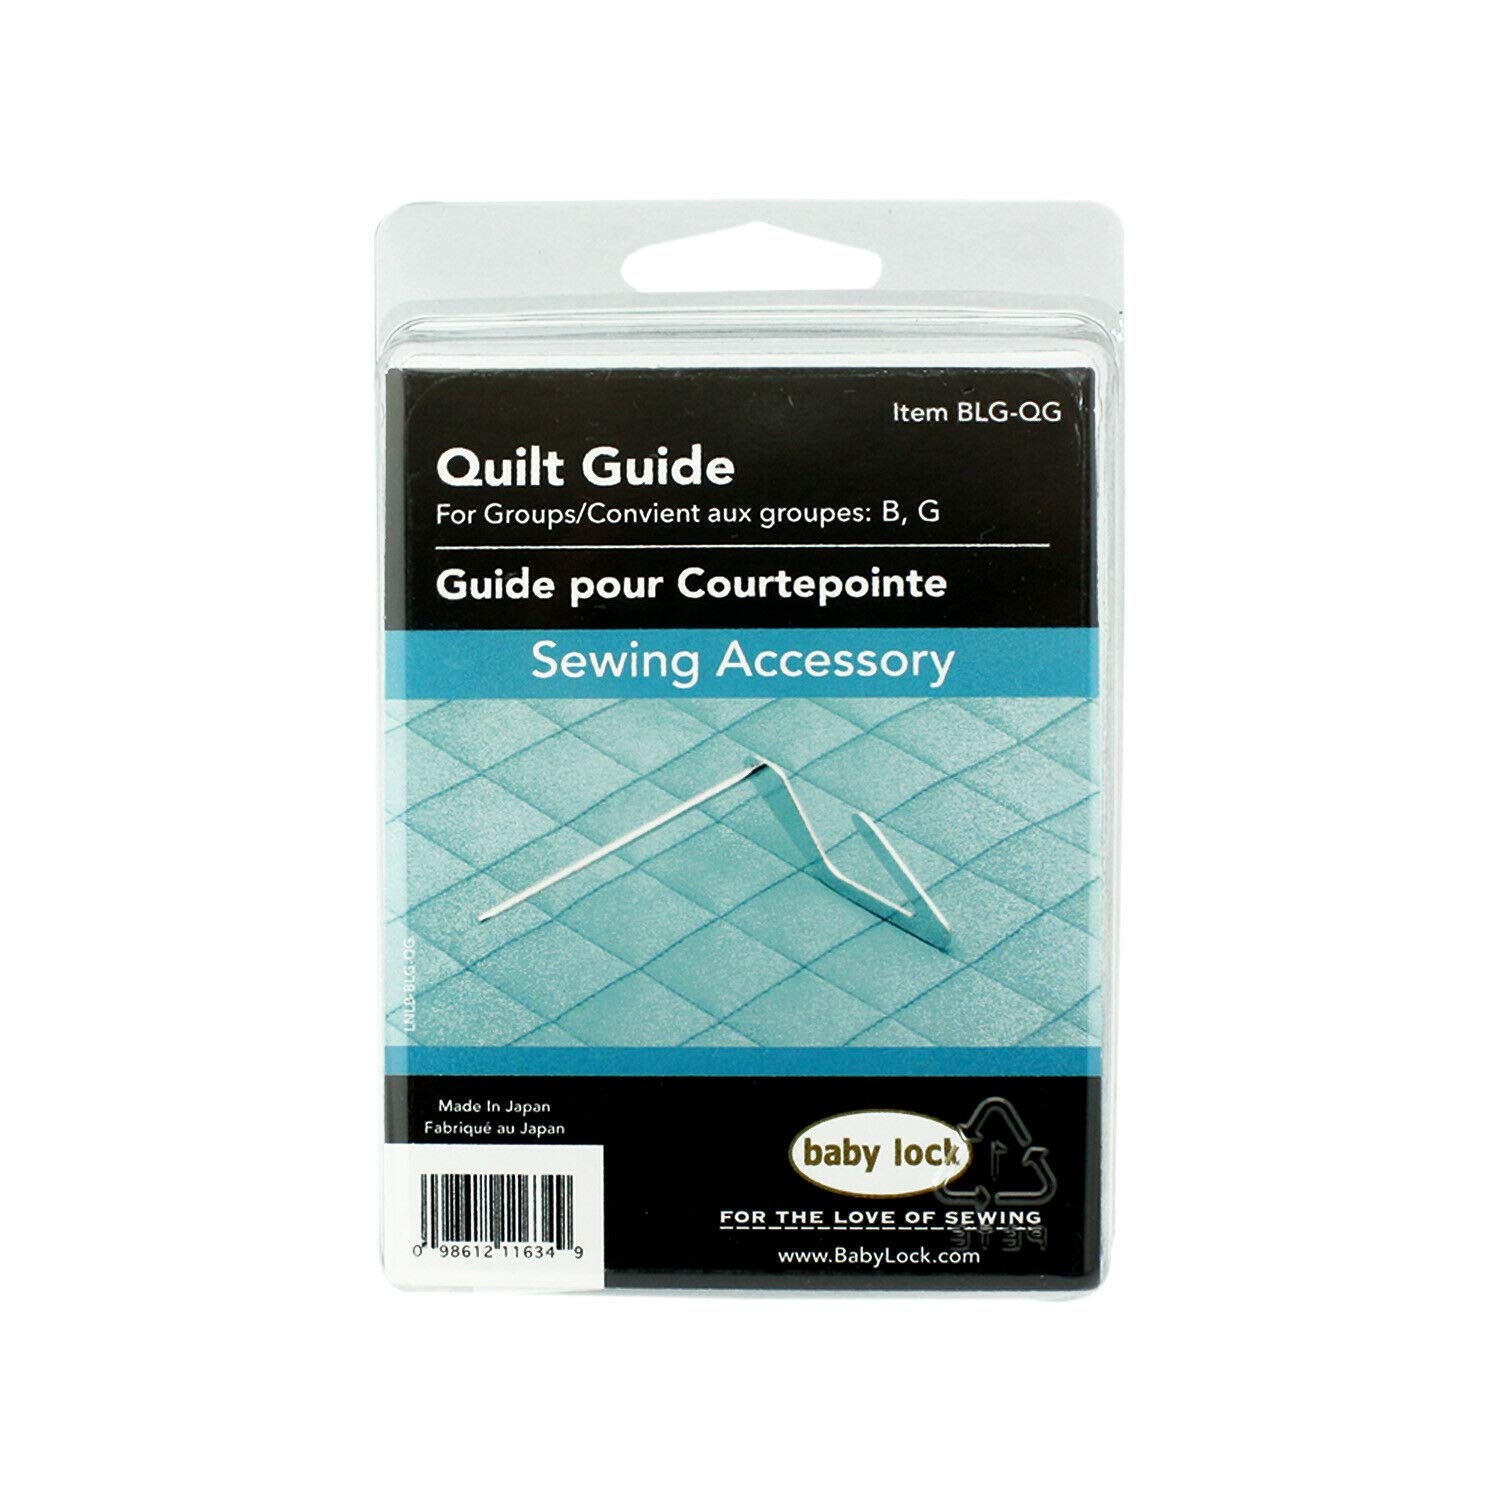 Quilting Guide #BLG-GQ for Baby Lock Sewing Machine